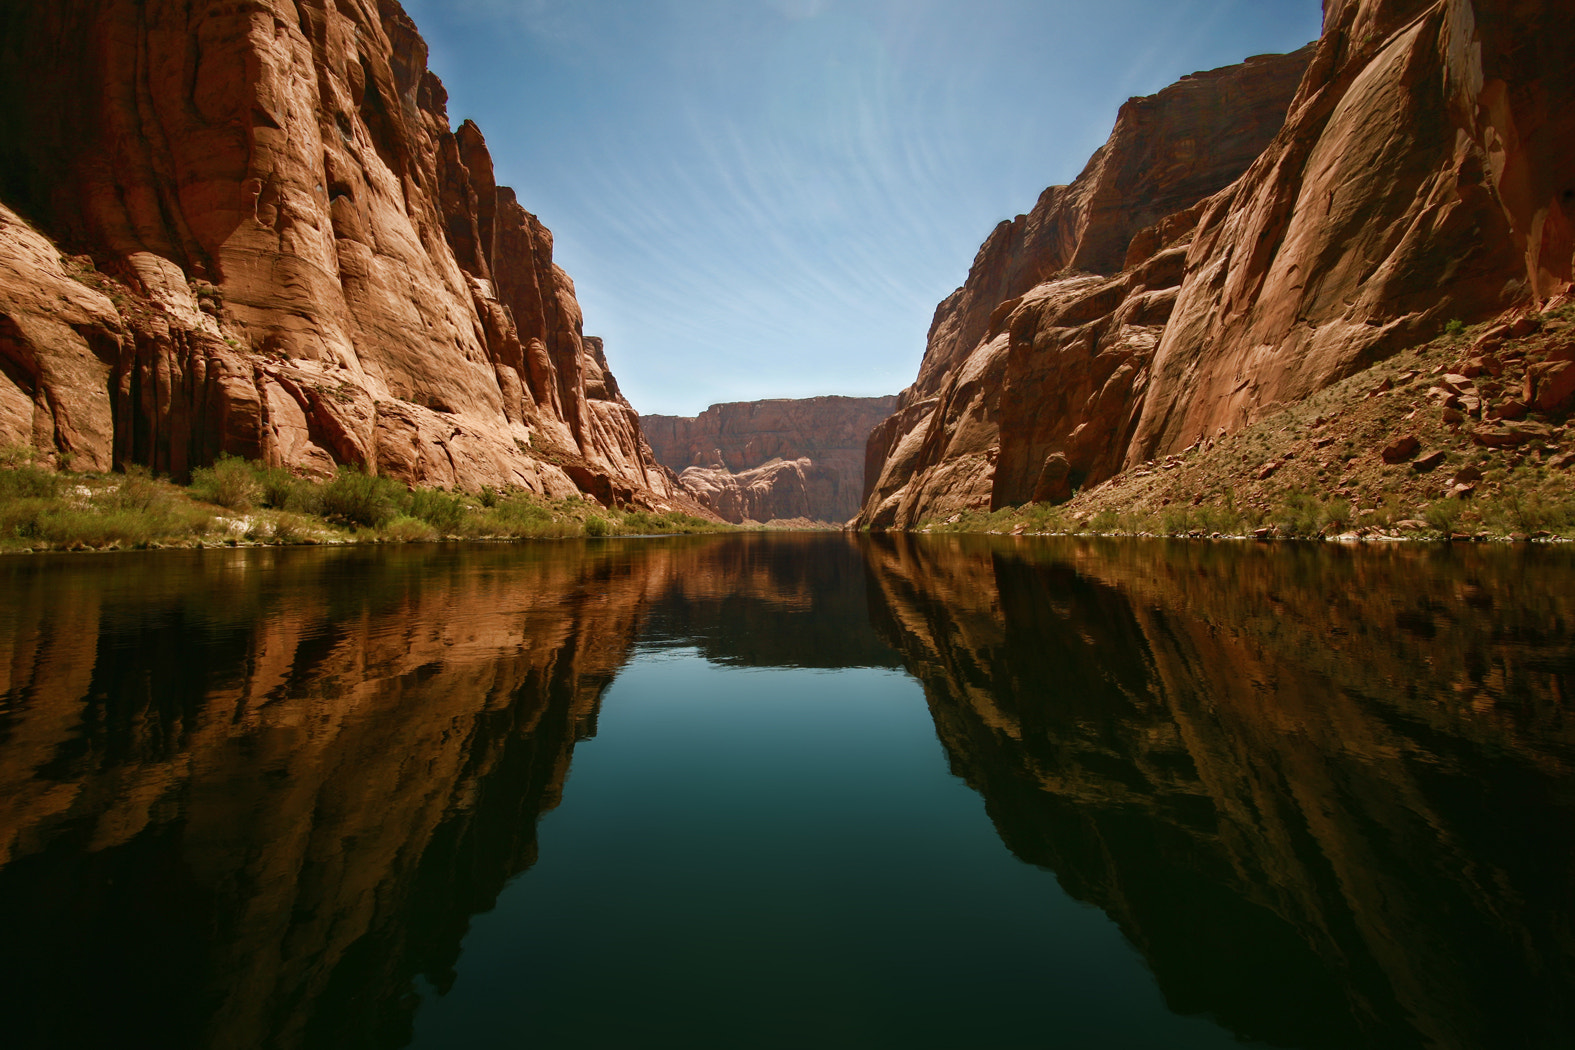 Photograph A Place to Reflect by Anthony Golston on 500px